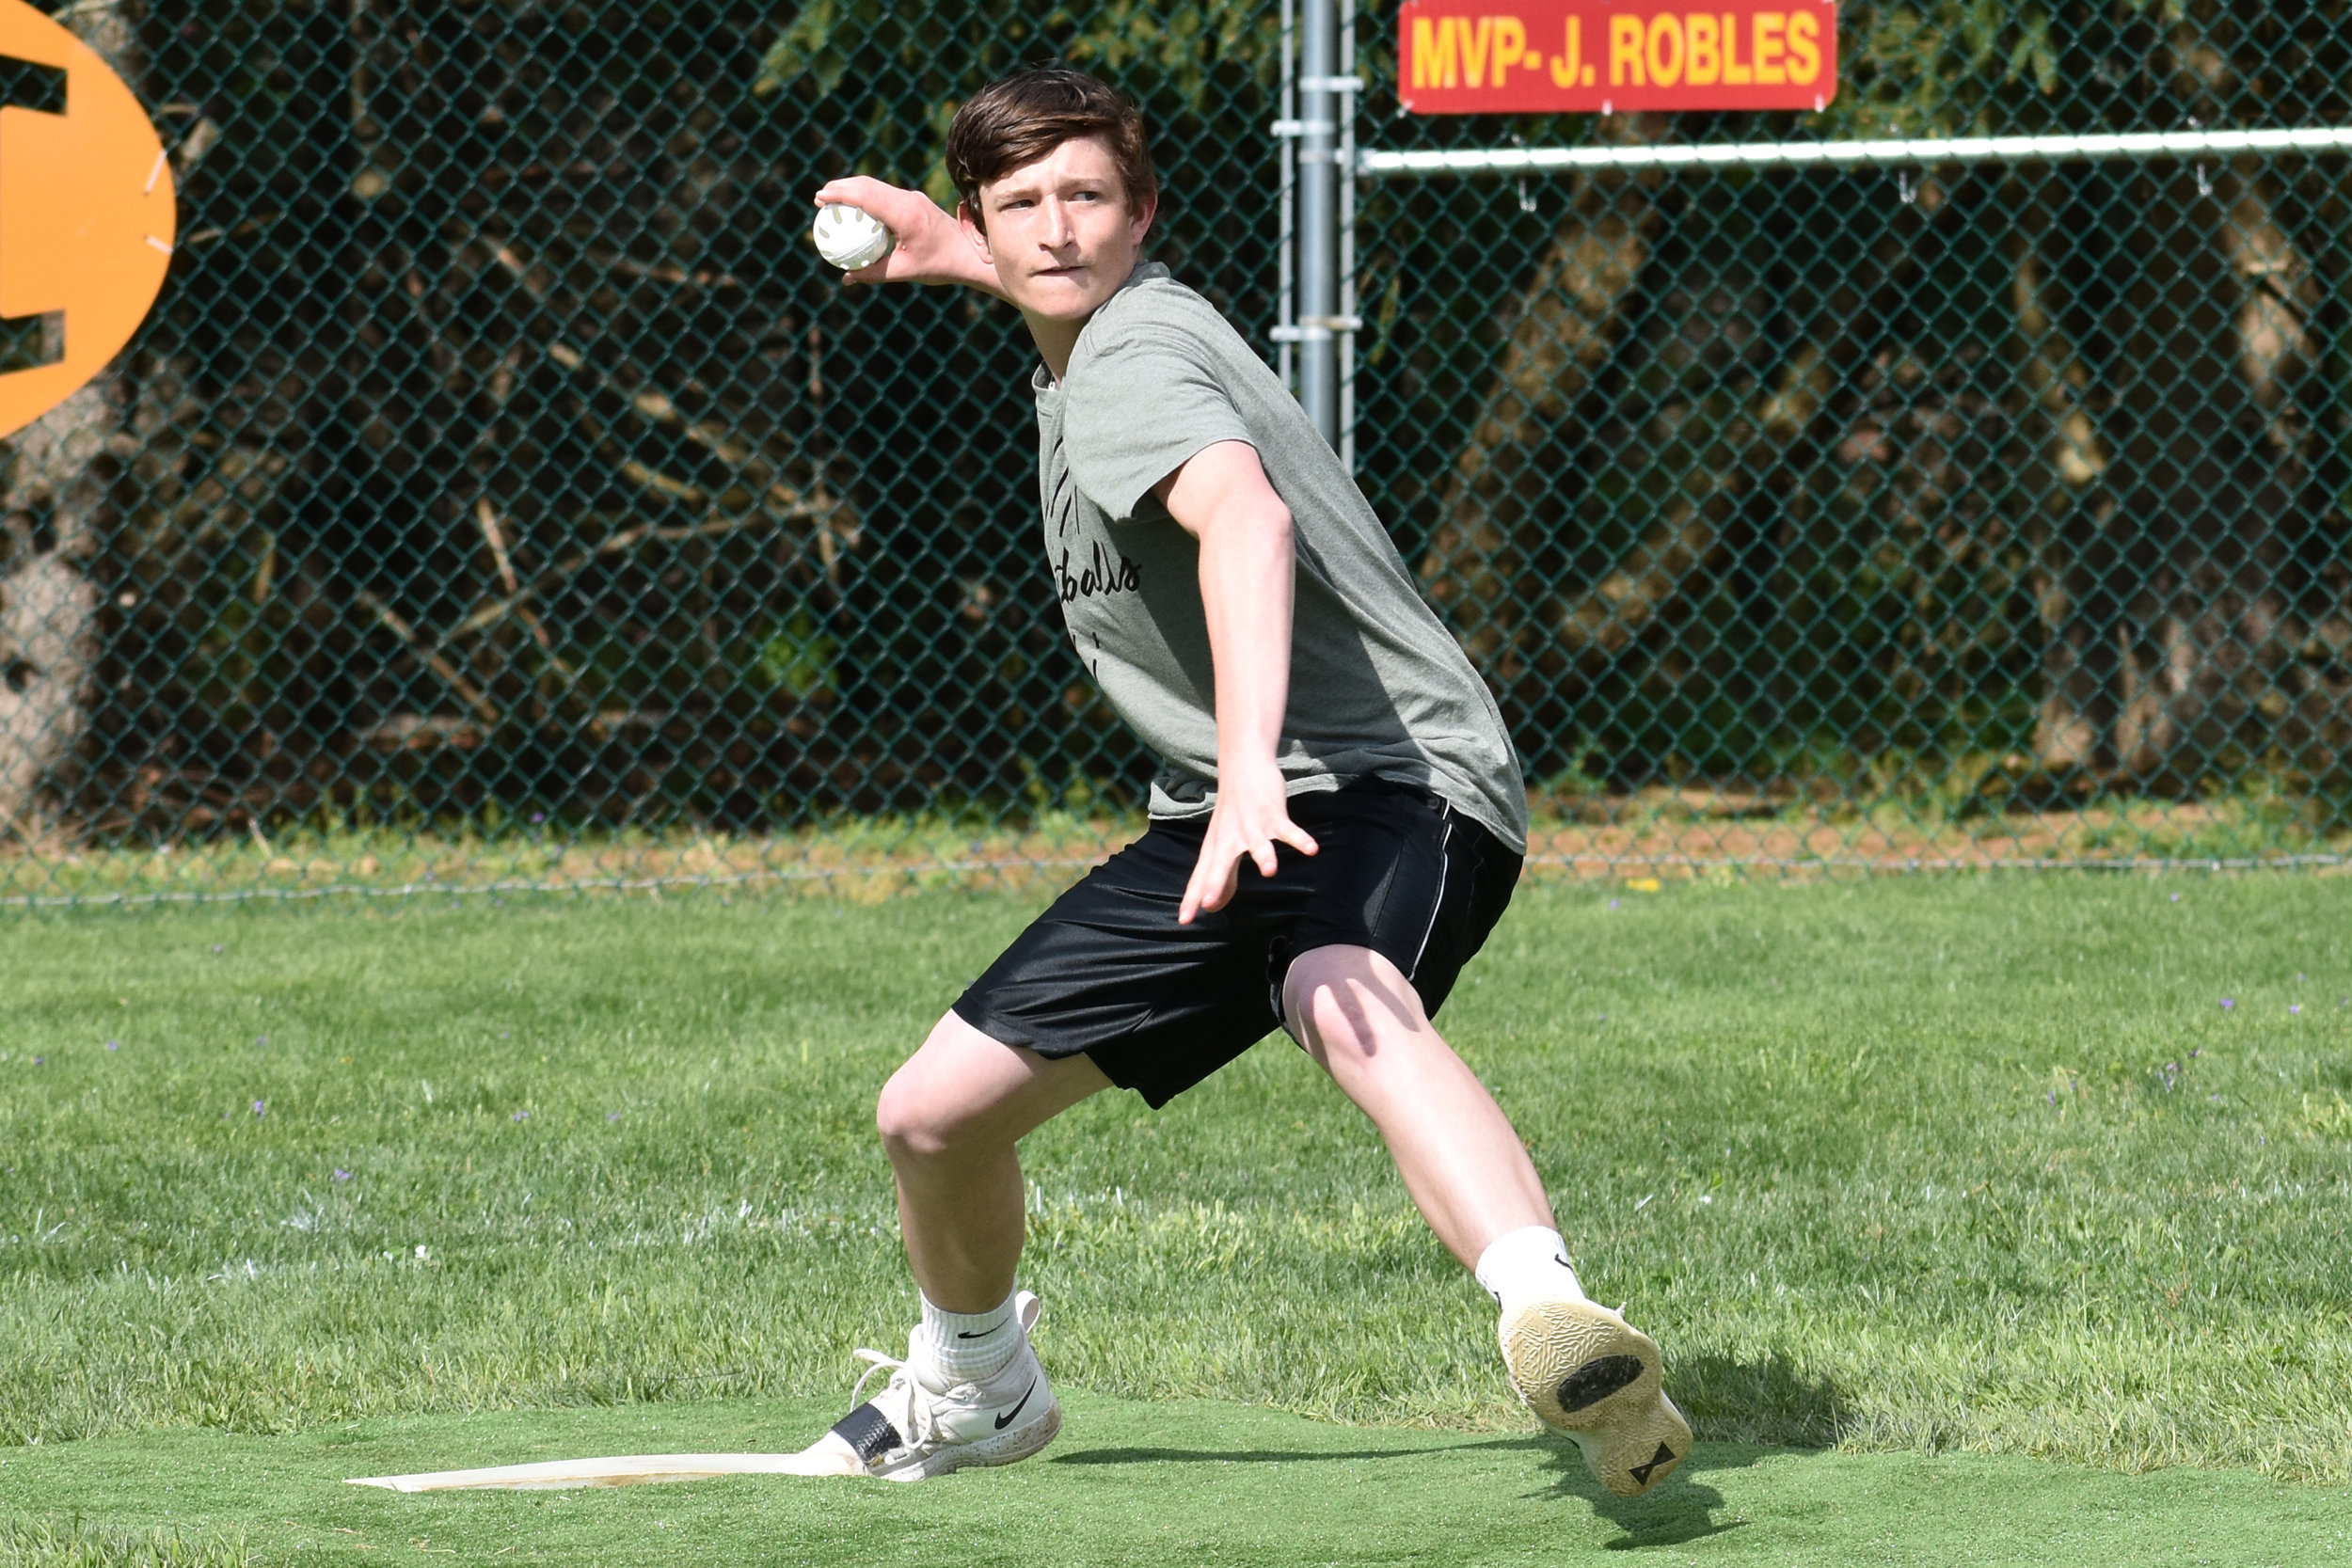 Frankie Campanile was a major factor in the Shortballs' run to the tournament title game. (April 20, 2019)